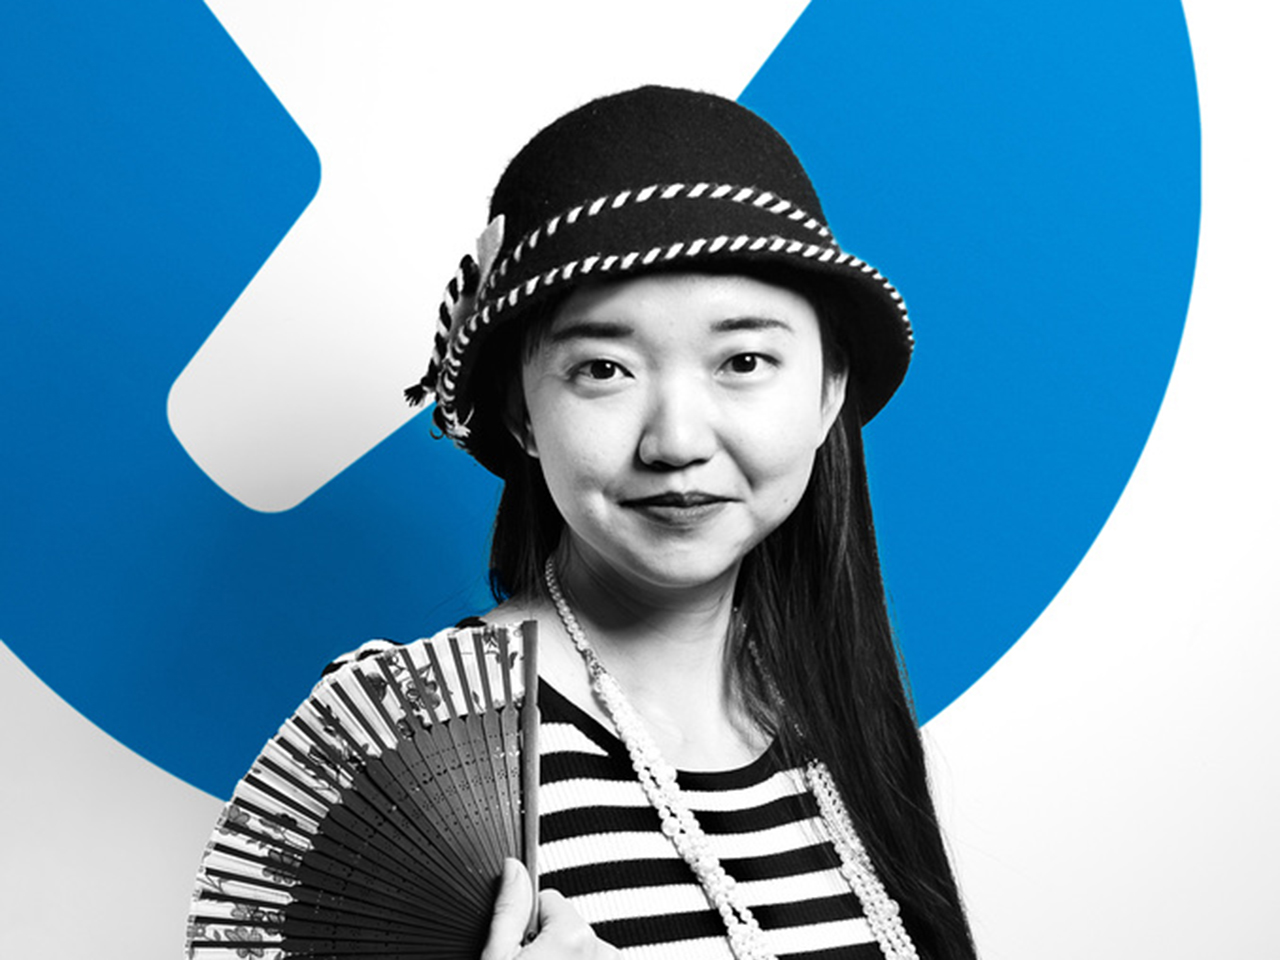 Yuting in front of the iFixit logo